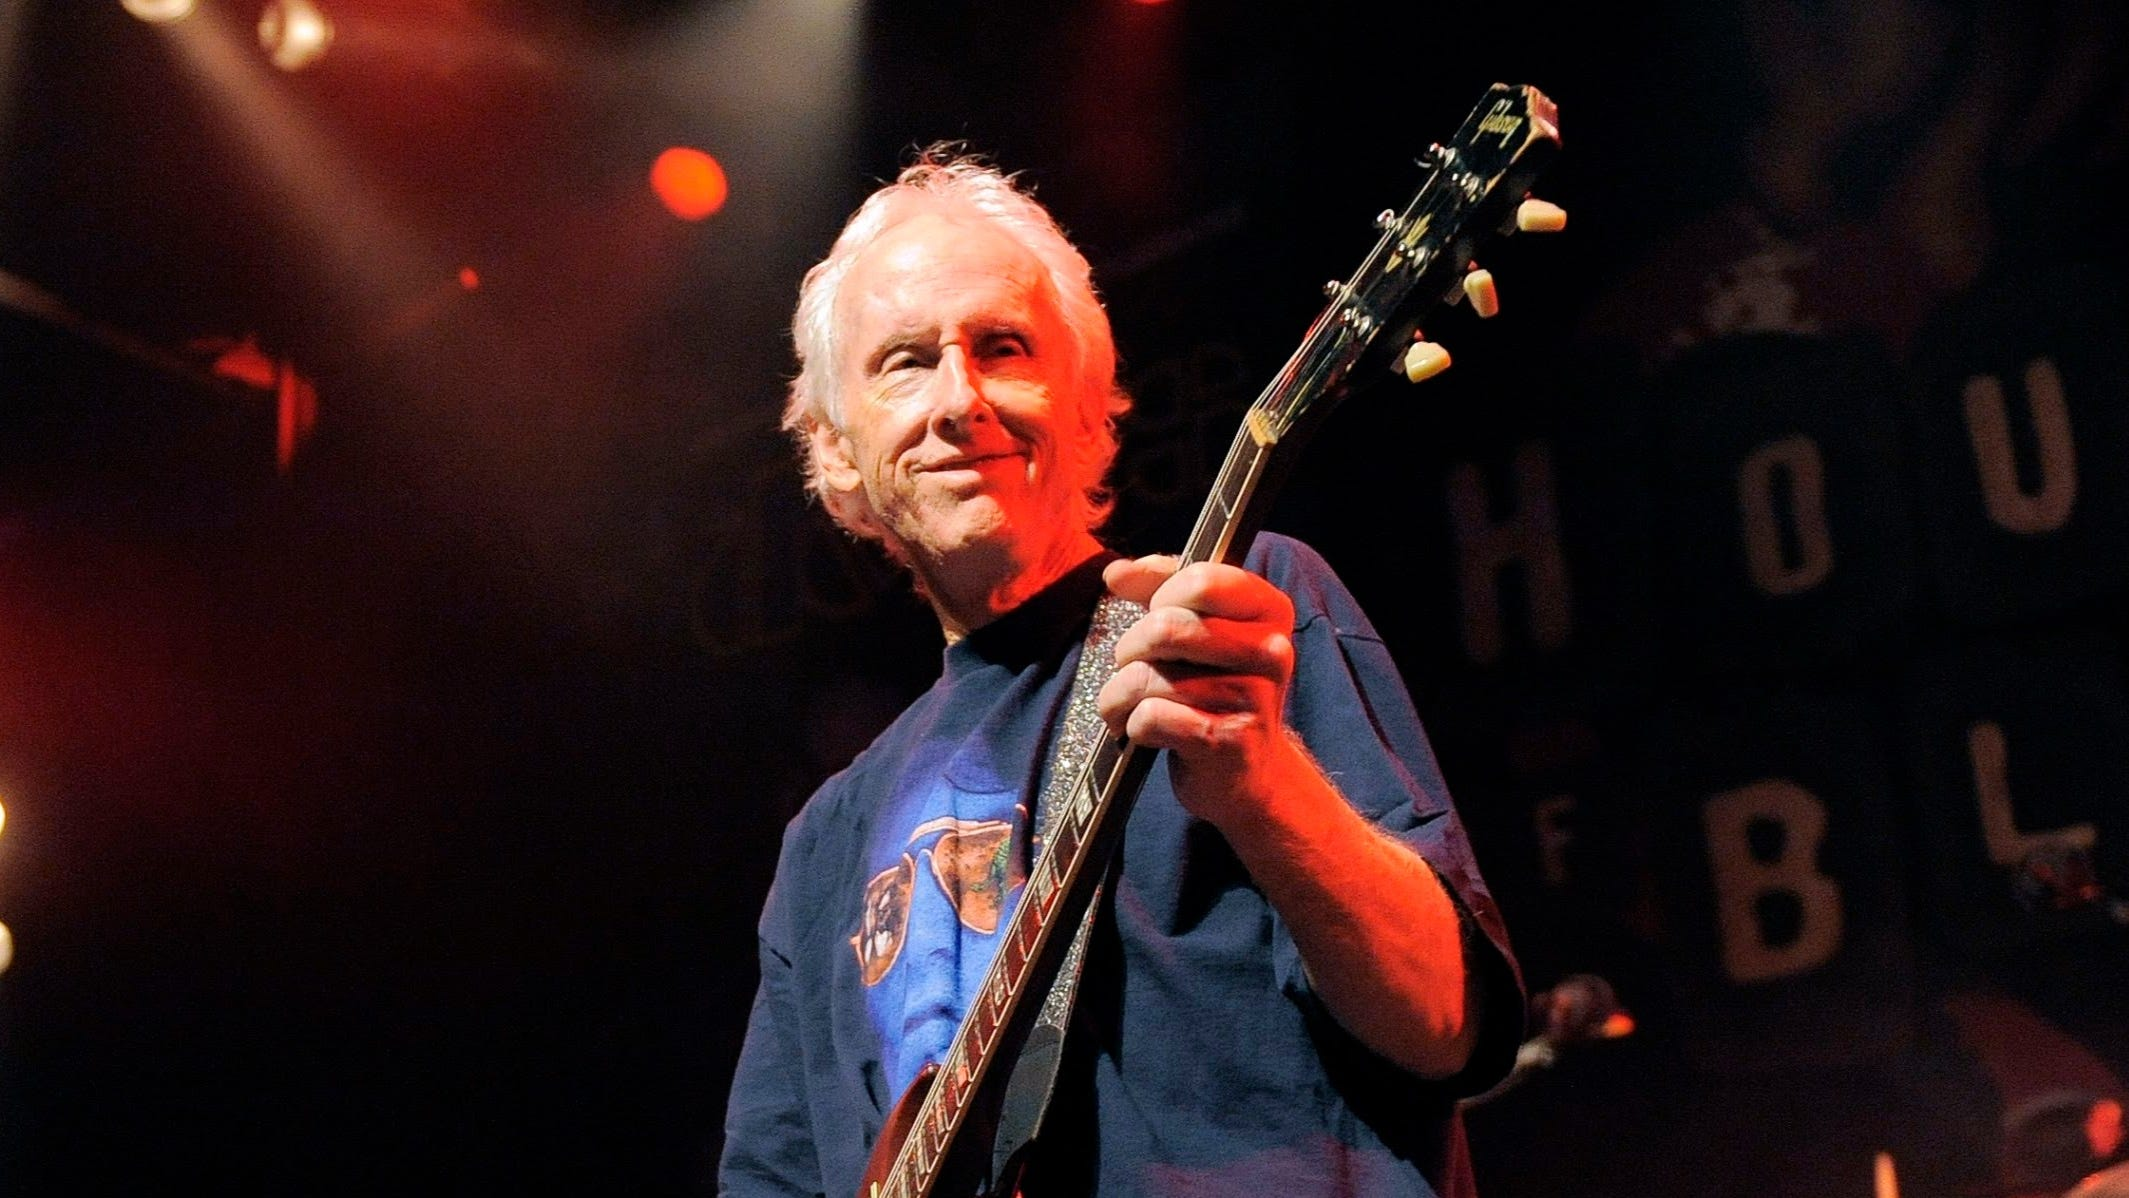 Robby Krieger will bring family celebration of the Doors to Indiana State Fair